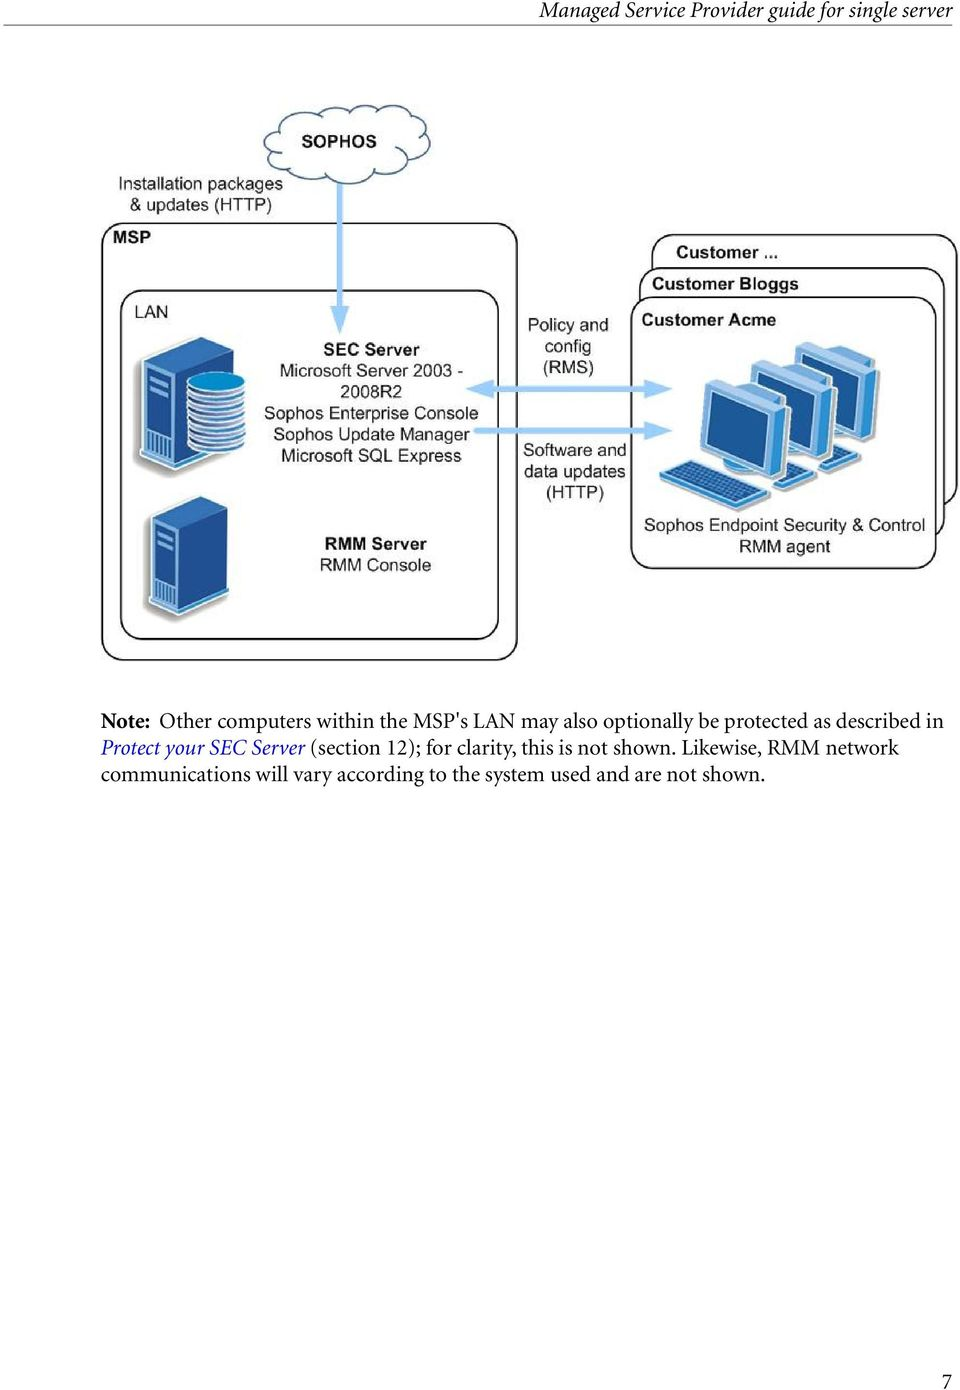 Sophos Endpoint Security and Control Managed Service